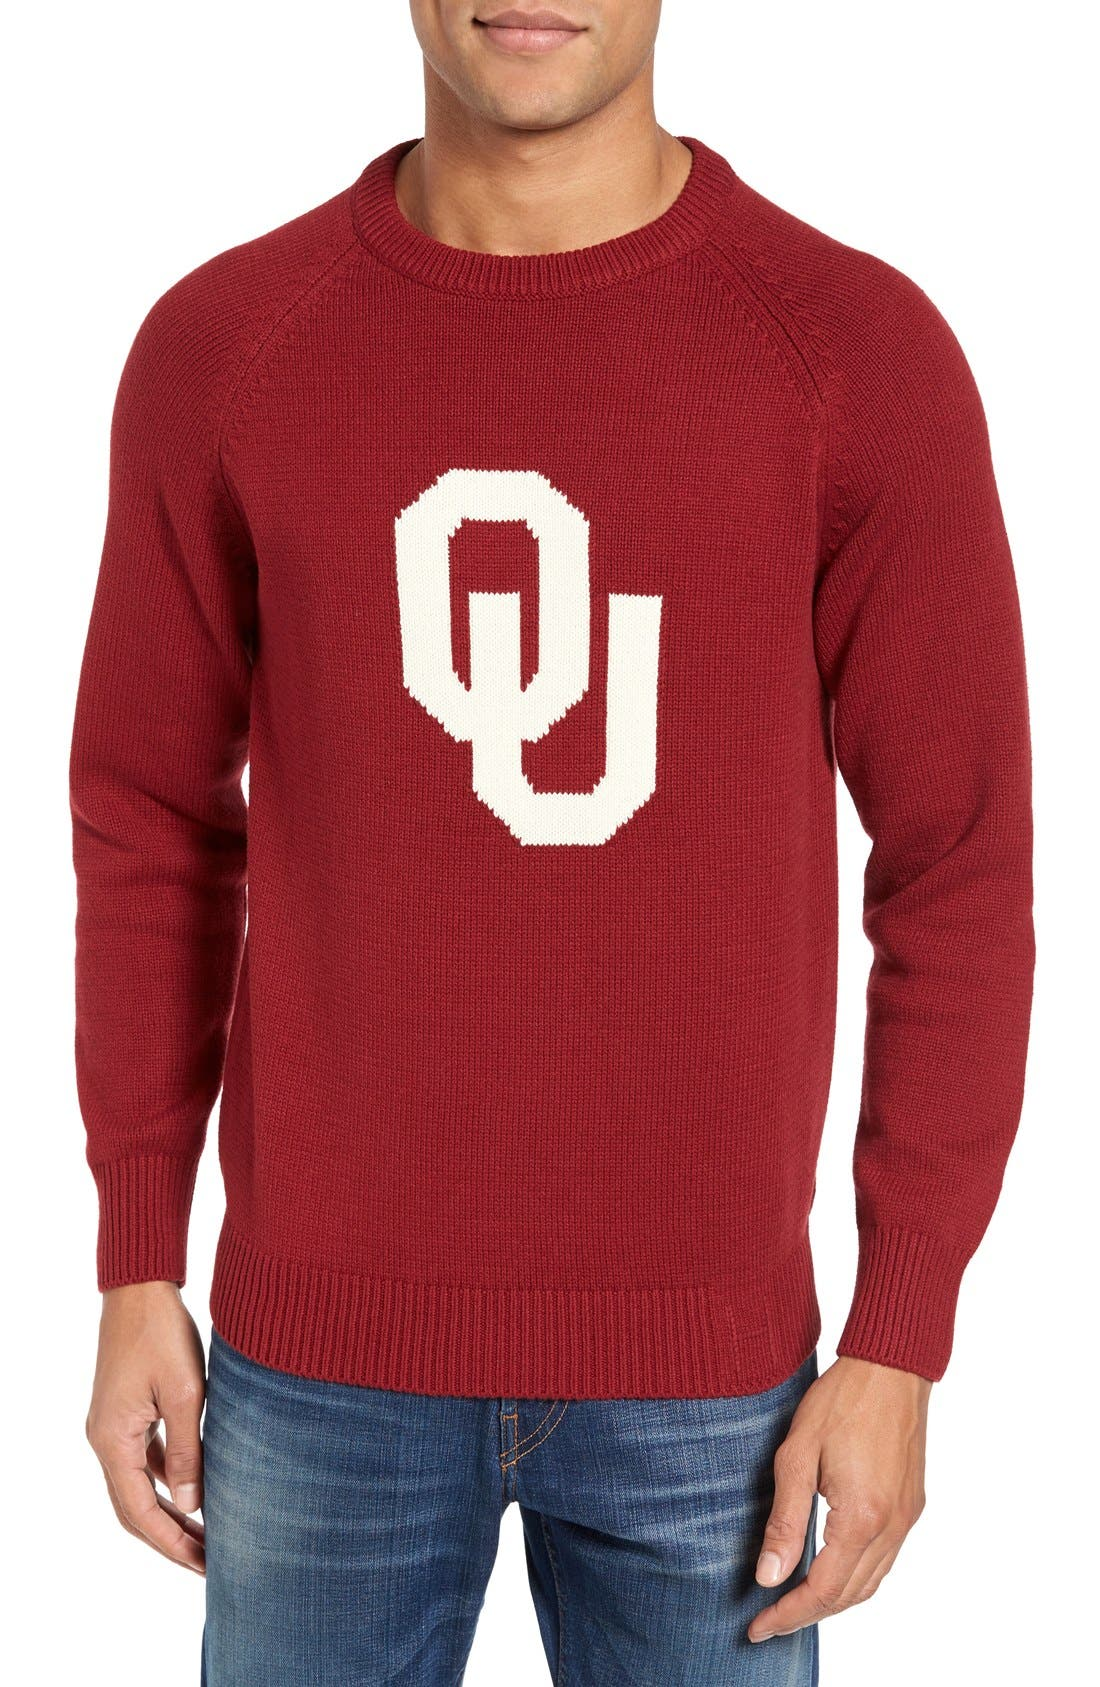 HILLFLINT Oklahoma University Heritage Sweater